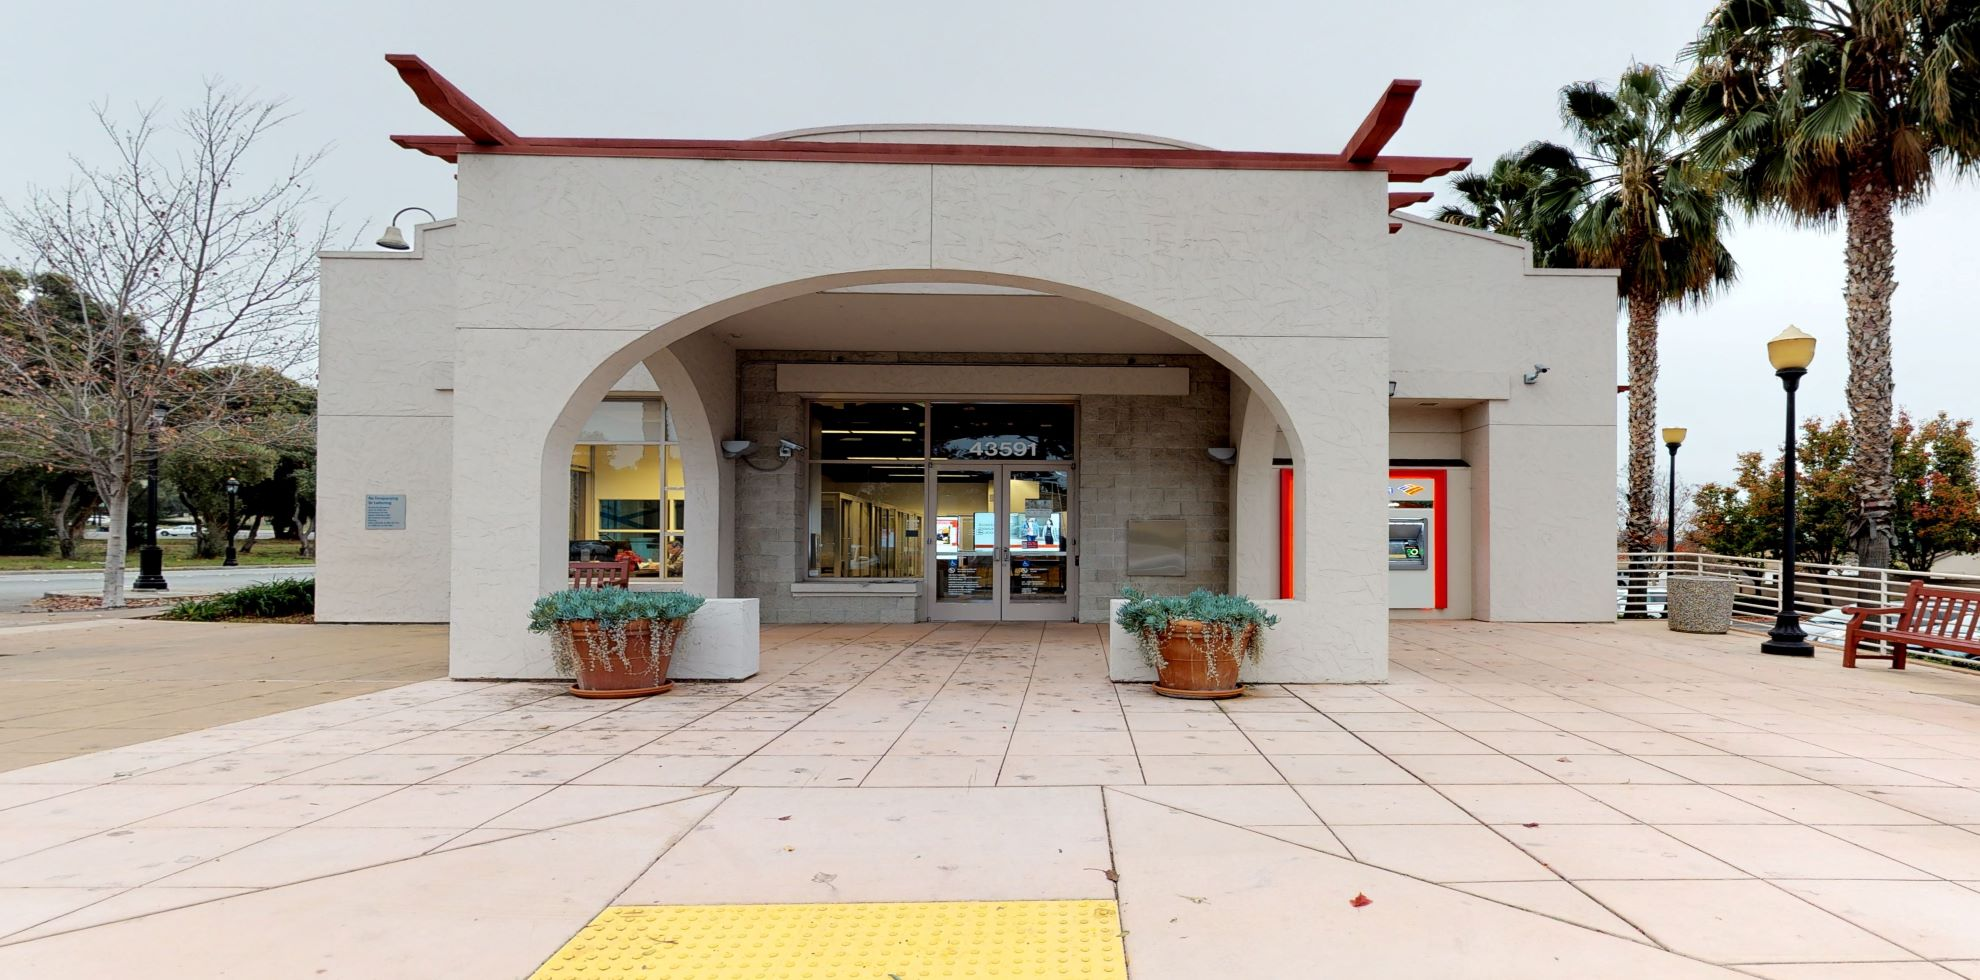 Bank of America financial center with walk-up ATM | 43591 Mission Blvd, Fremont, CA 94539